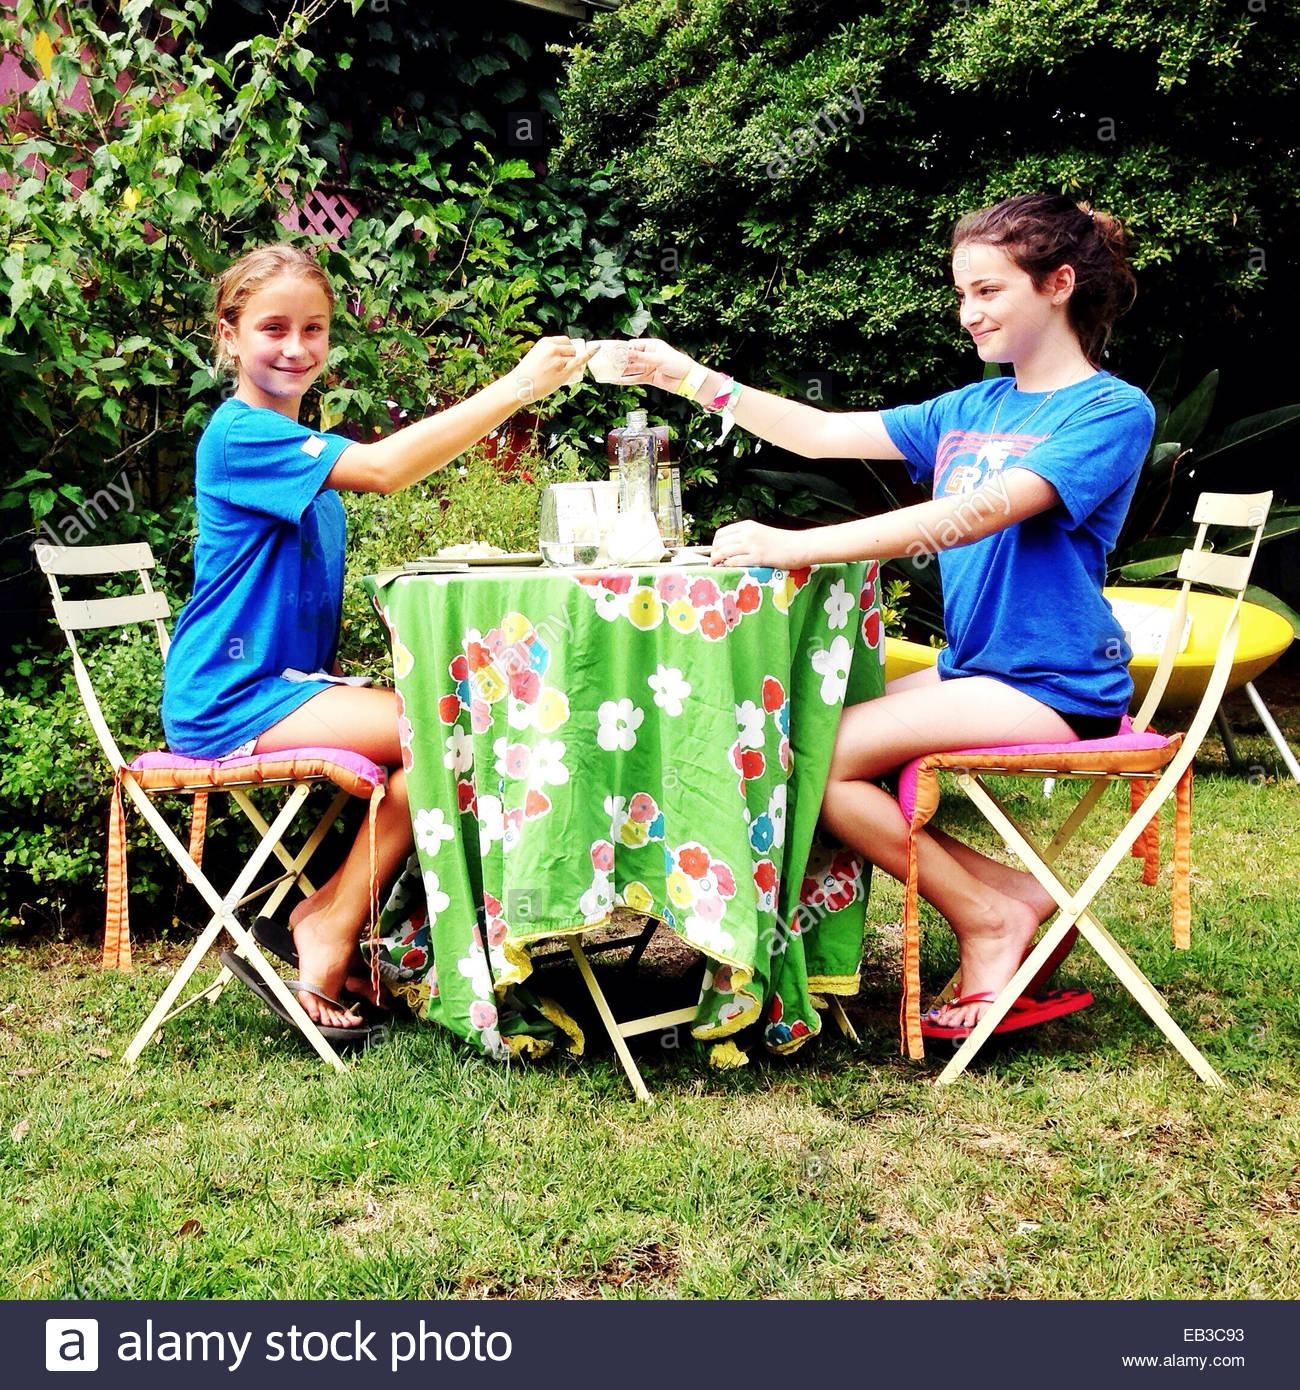 Two girls sitting in garden making a celebratory toast with cups of tea - Stock Image